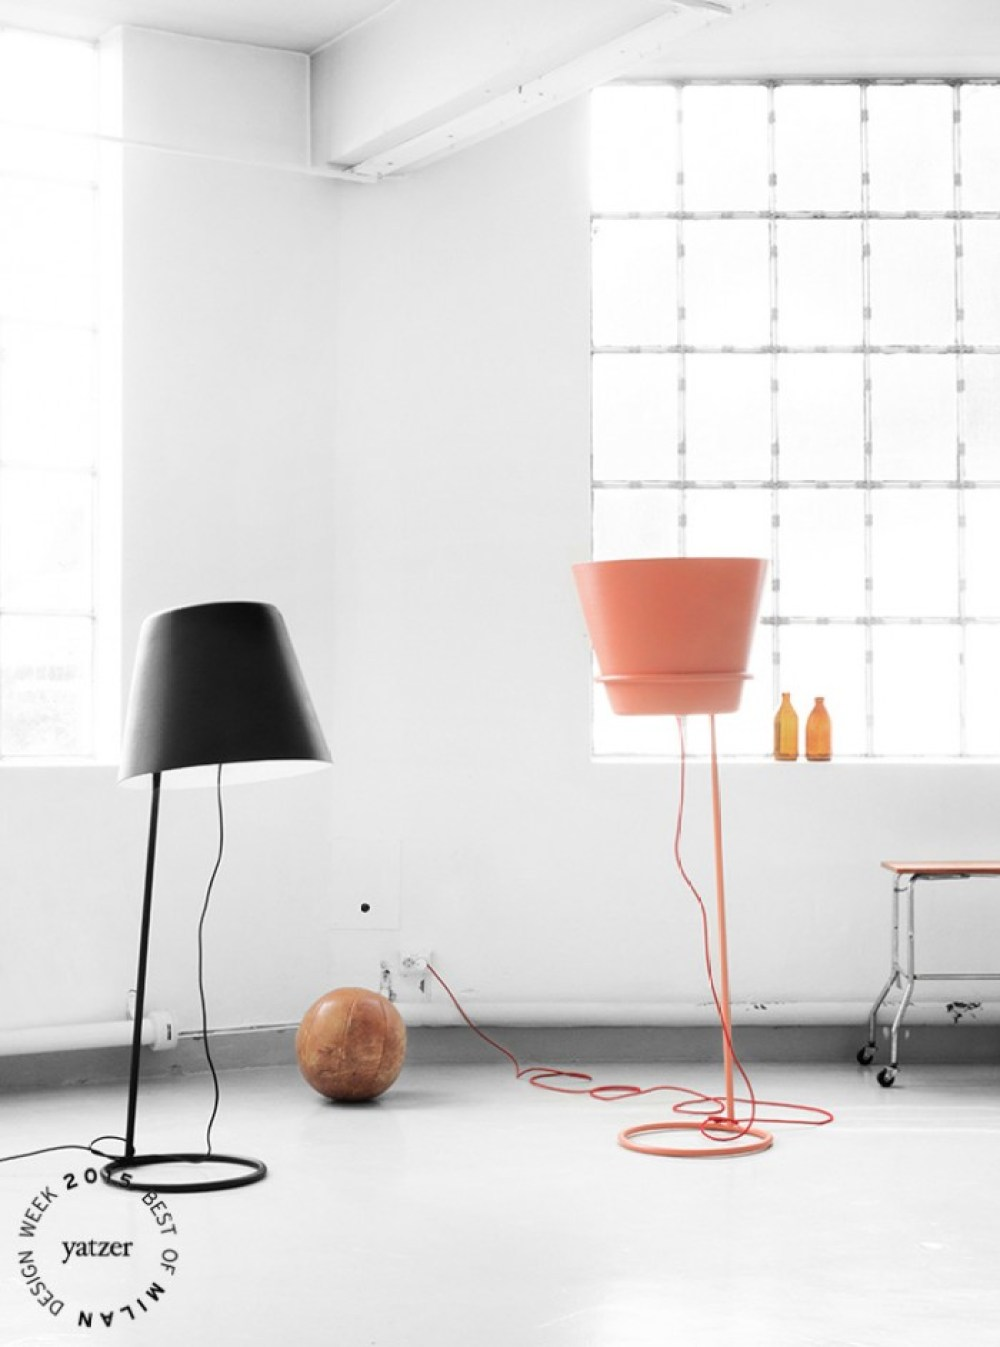 Morten-Jonas_milan_design_week_2015_yatzer-floor lamp